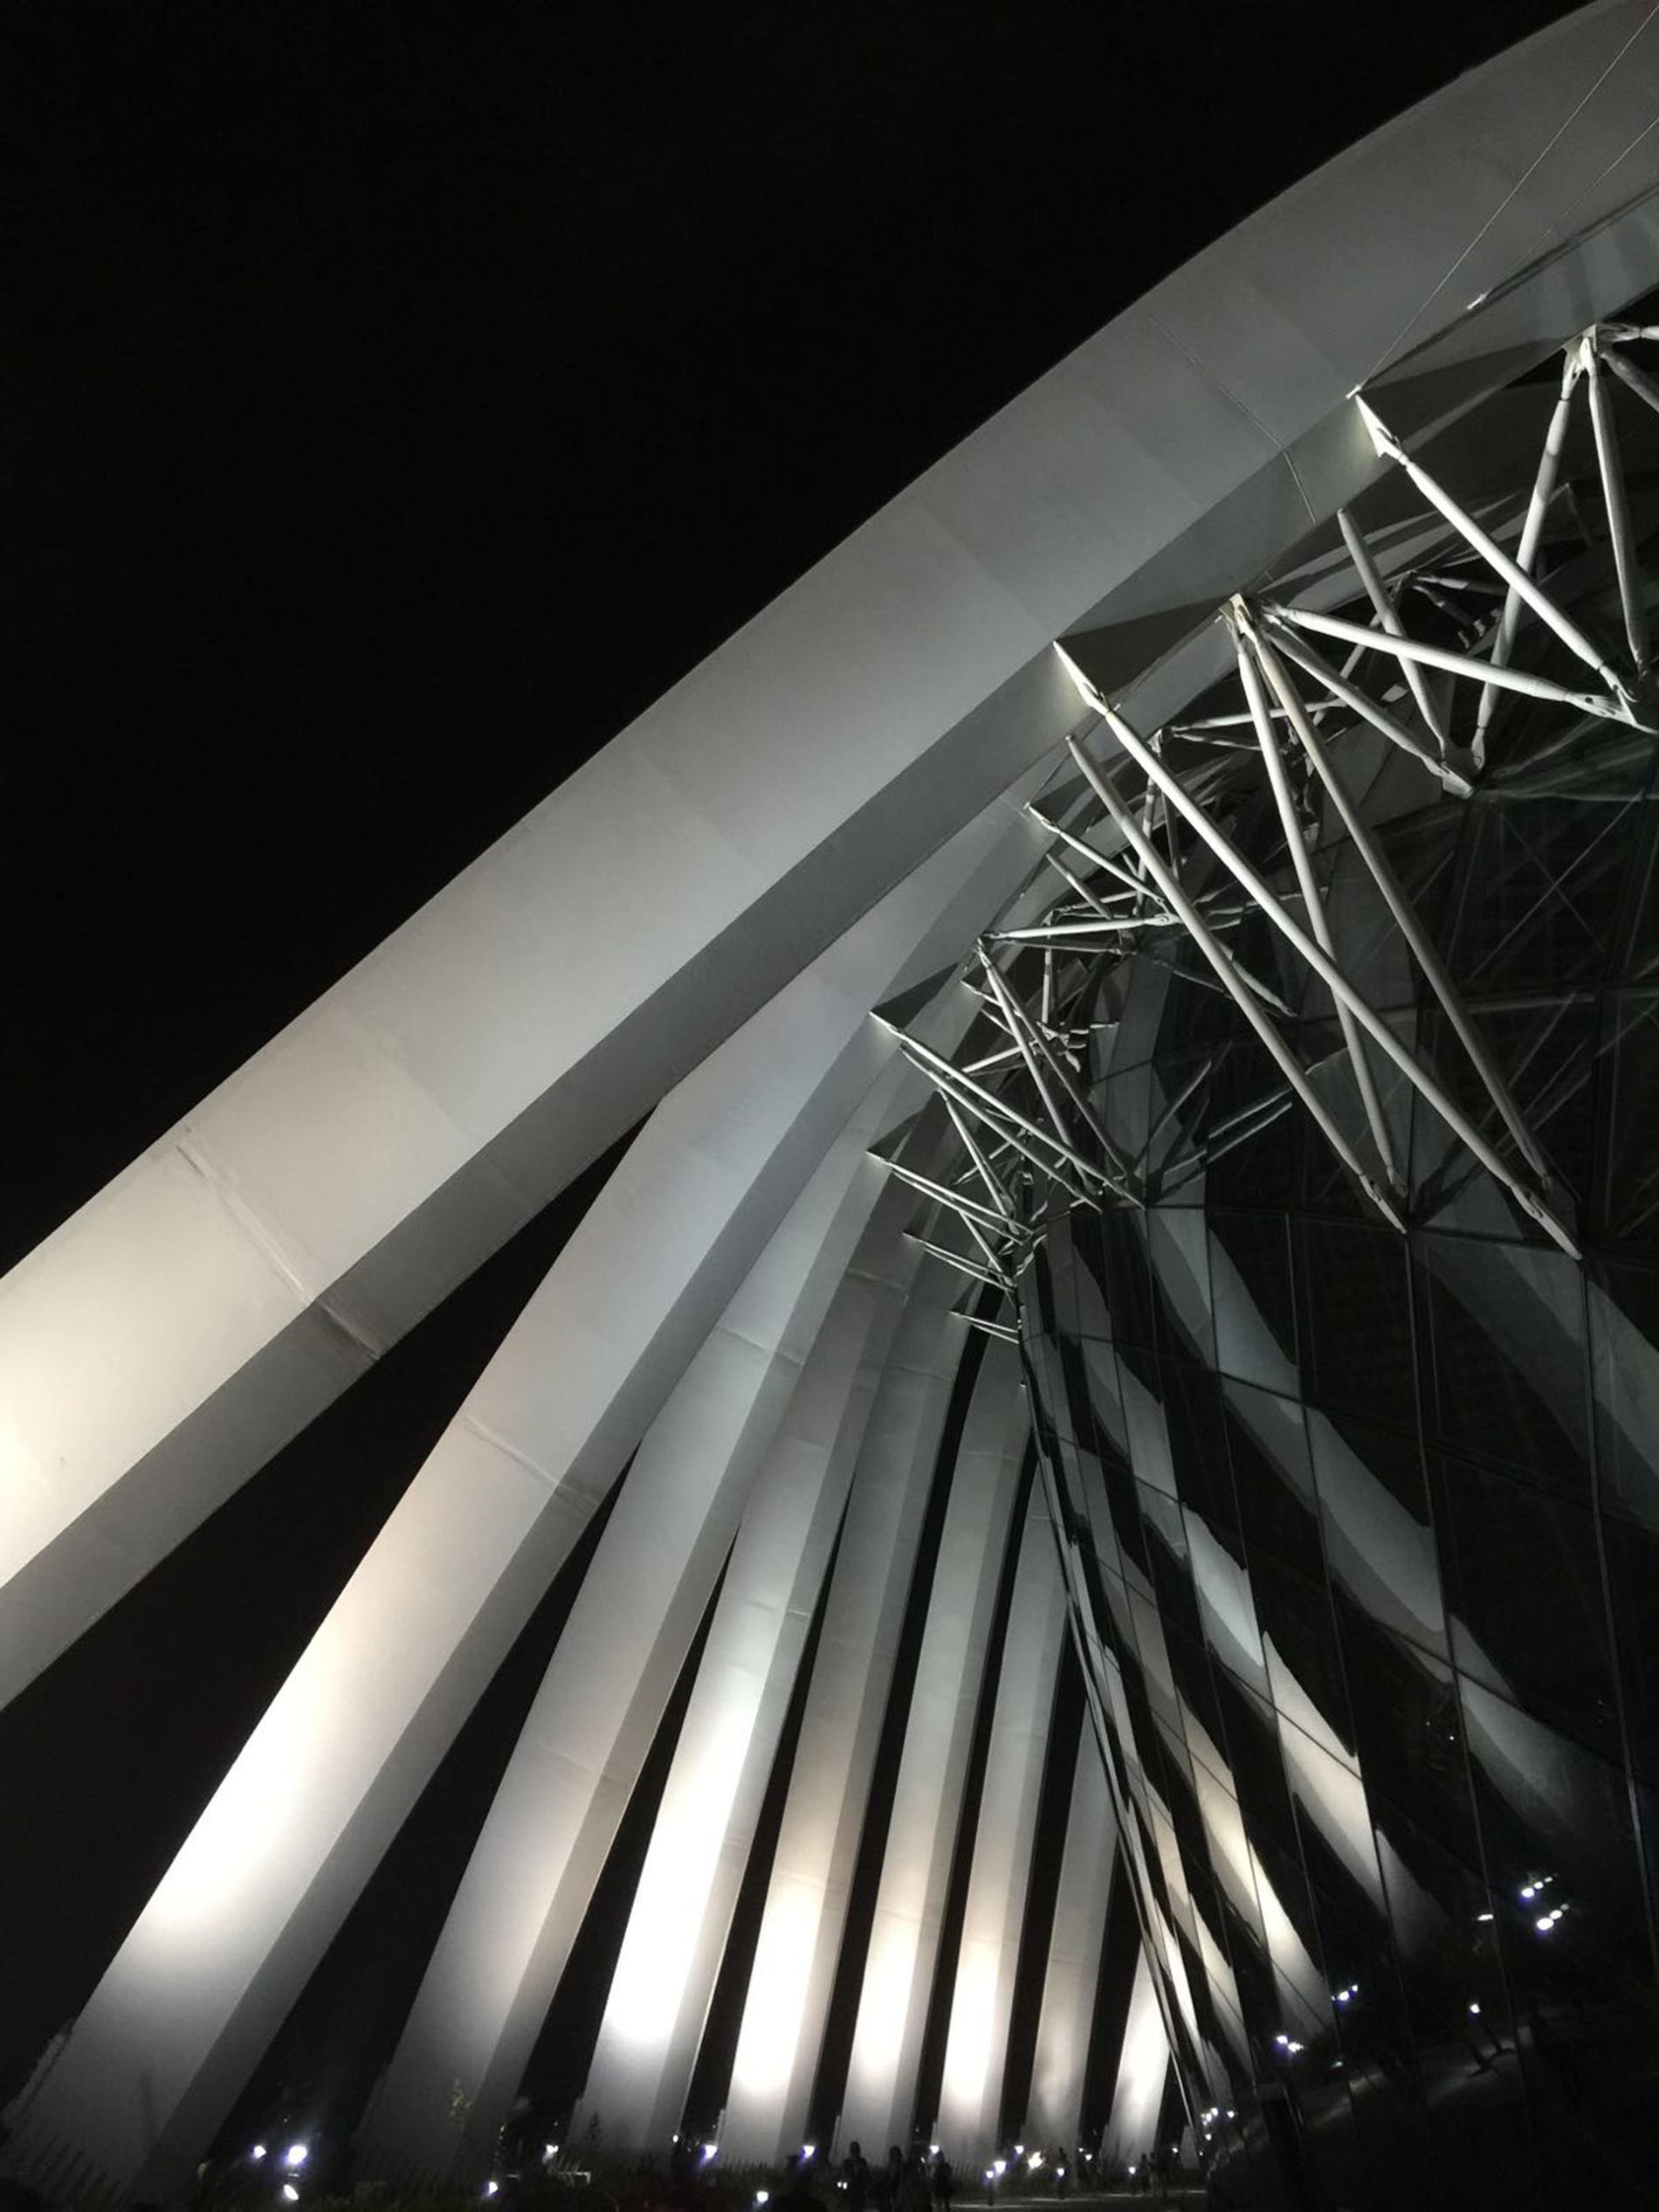 Low angle photo of designer's structure during nighttime